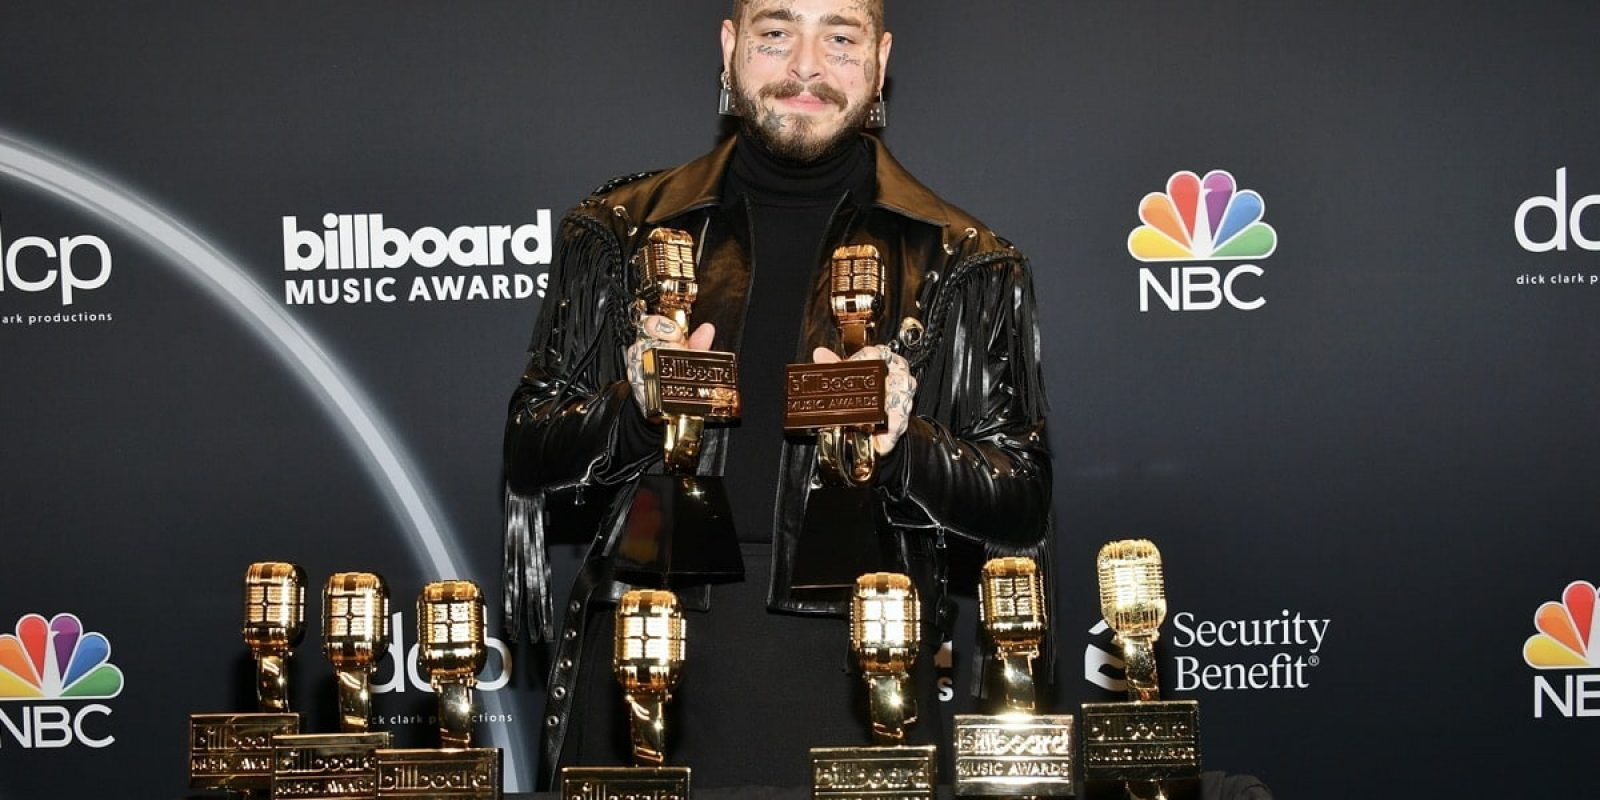 HOLLYWOOD, CALIFORNIA - OCTOBER 14: In this image released on October 14, Post Malone poses backstage at the 2020 Billboard Music Awards, broadcast on October 14, 2020 at the Dolby Theatre in Los Angeles, CA.  (Photo by Amy Sussman/BBMA2020/Getty Images for dcp )